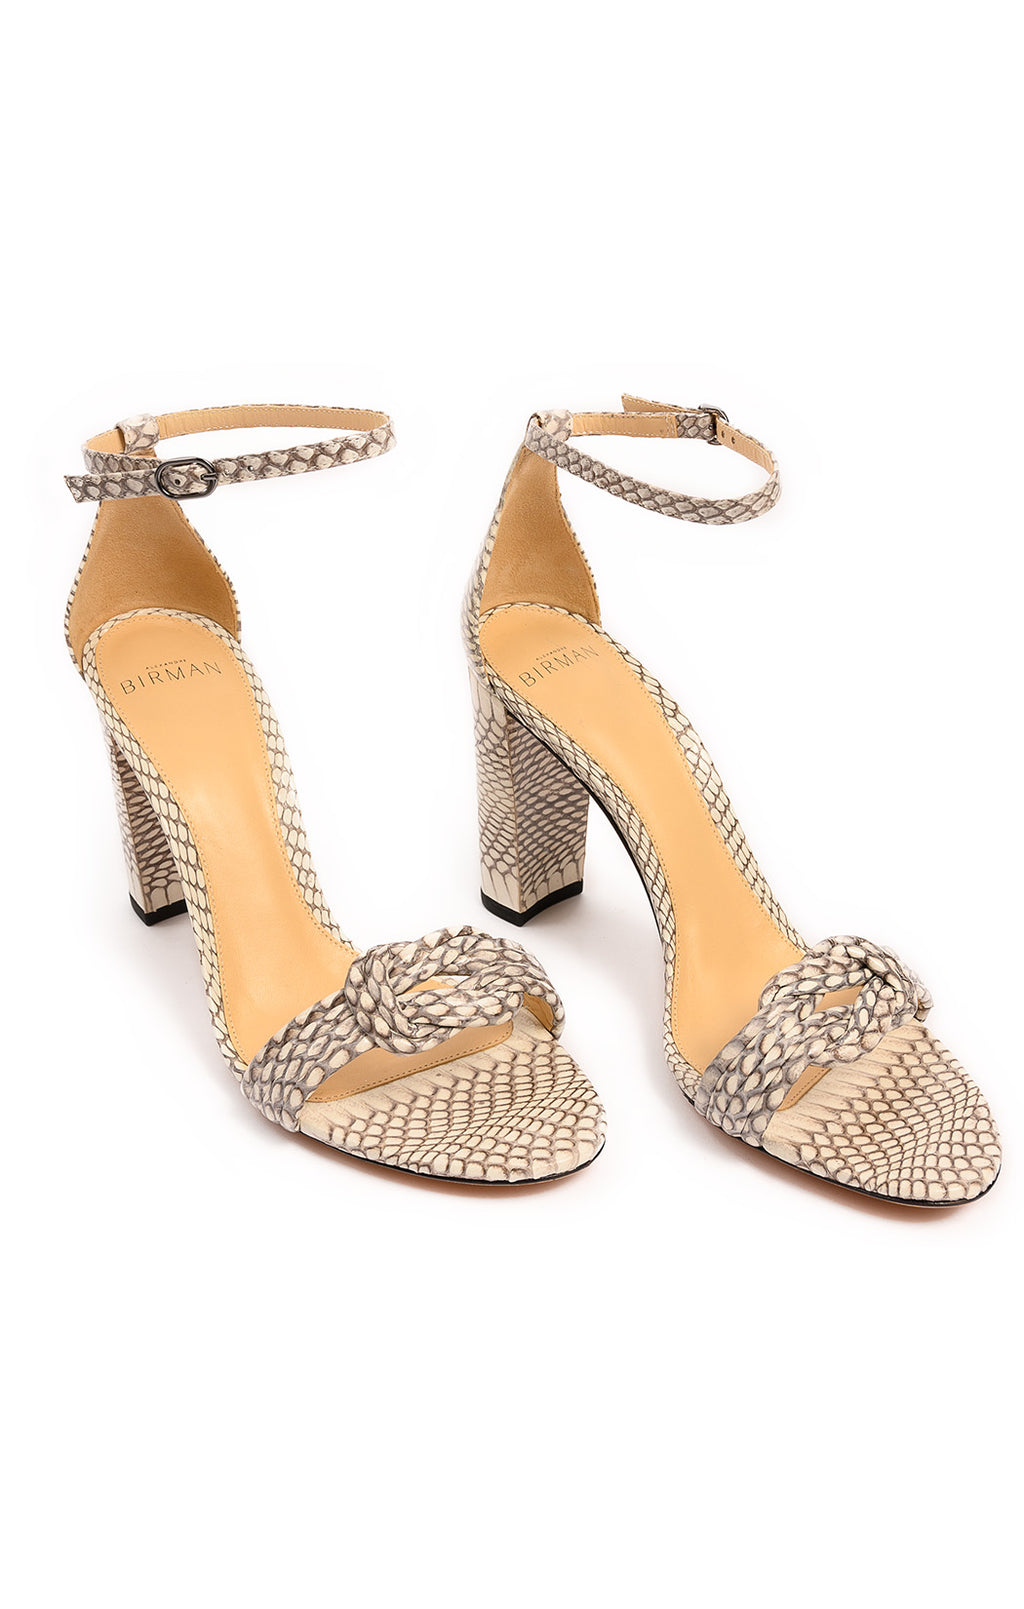 Front view of ALEXANDRE BIRMAN Sandals Size: 39/9